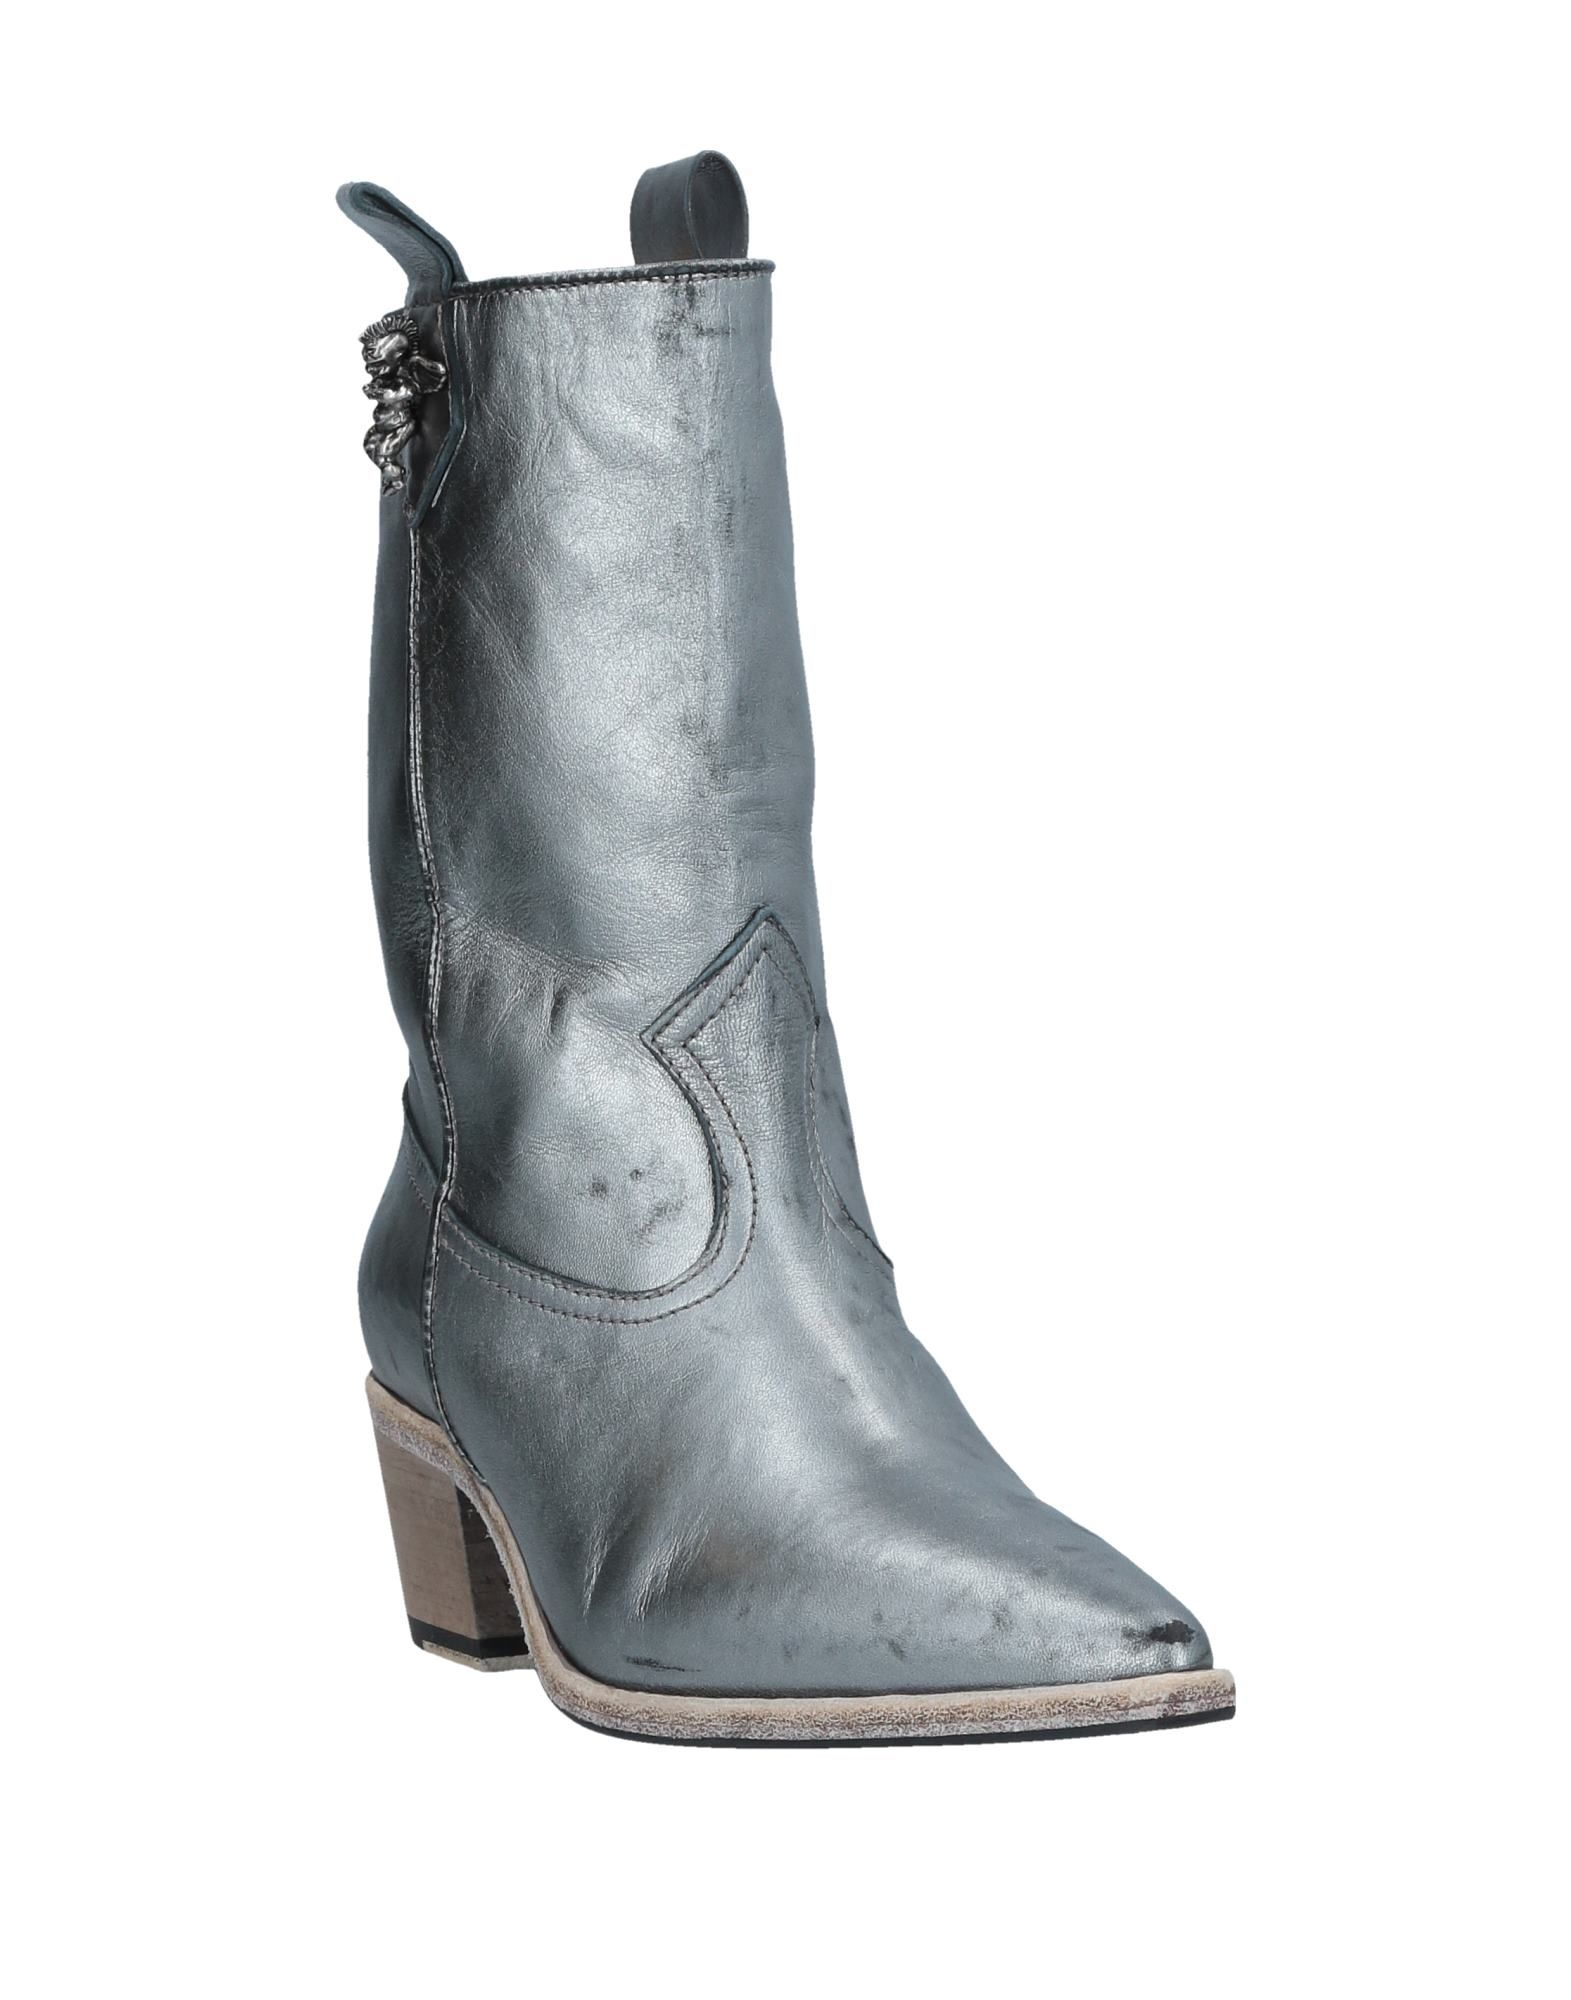 Rabatt Schuhe Richmond John Richmond Schuhe Stiefelette Damen 11533899PU add112